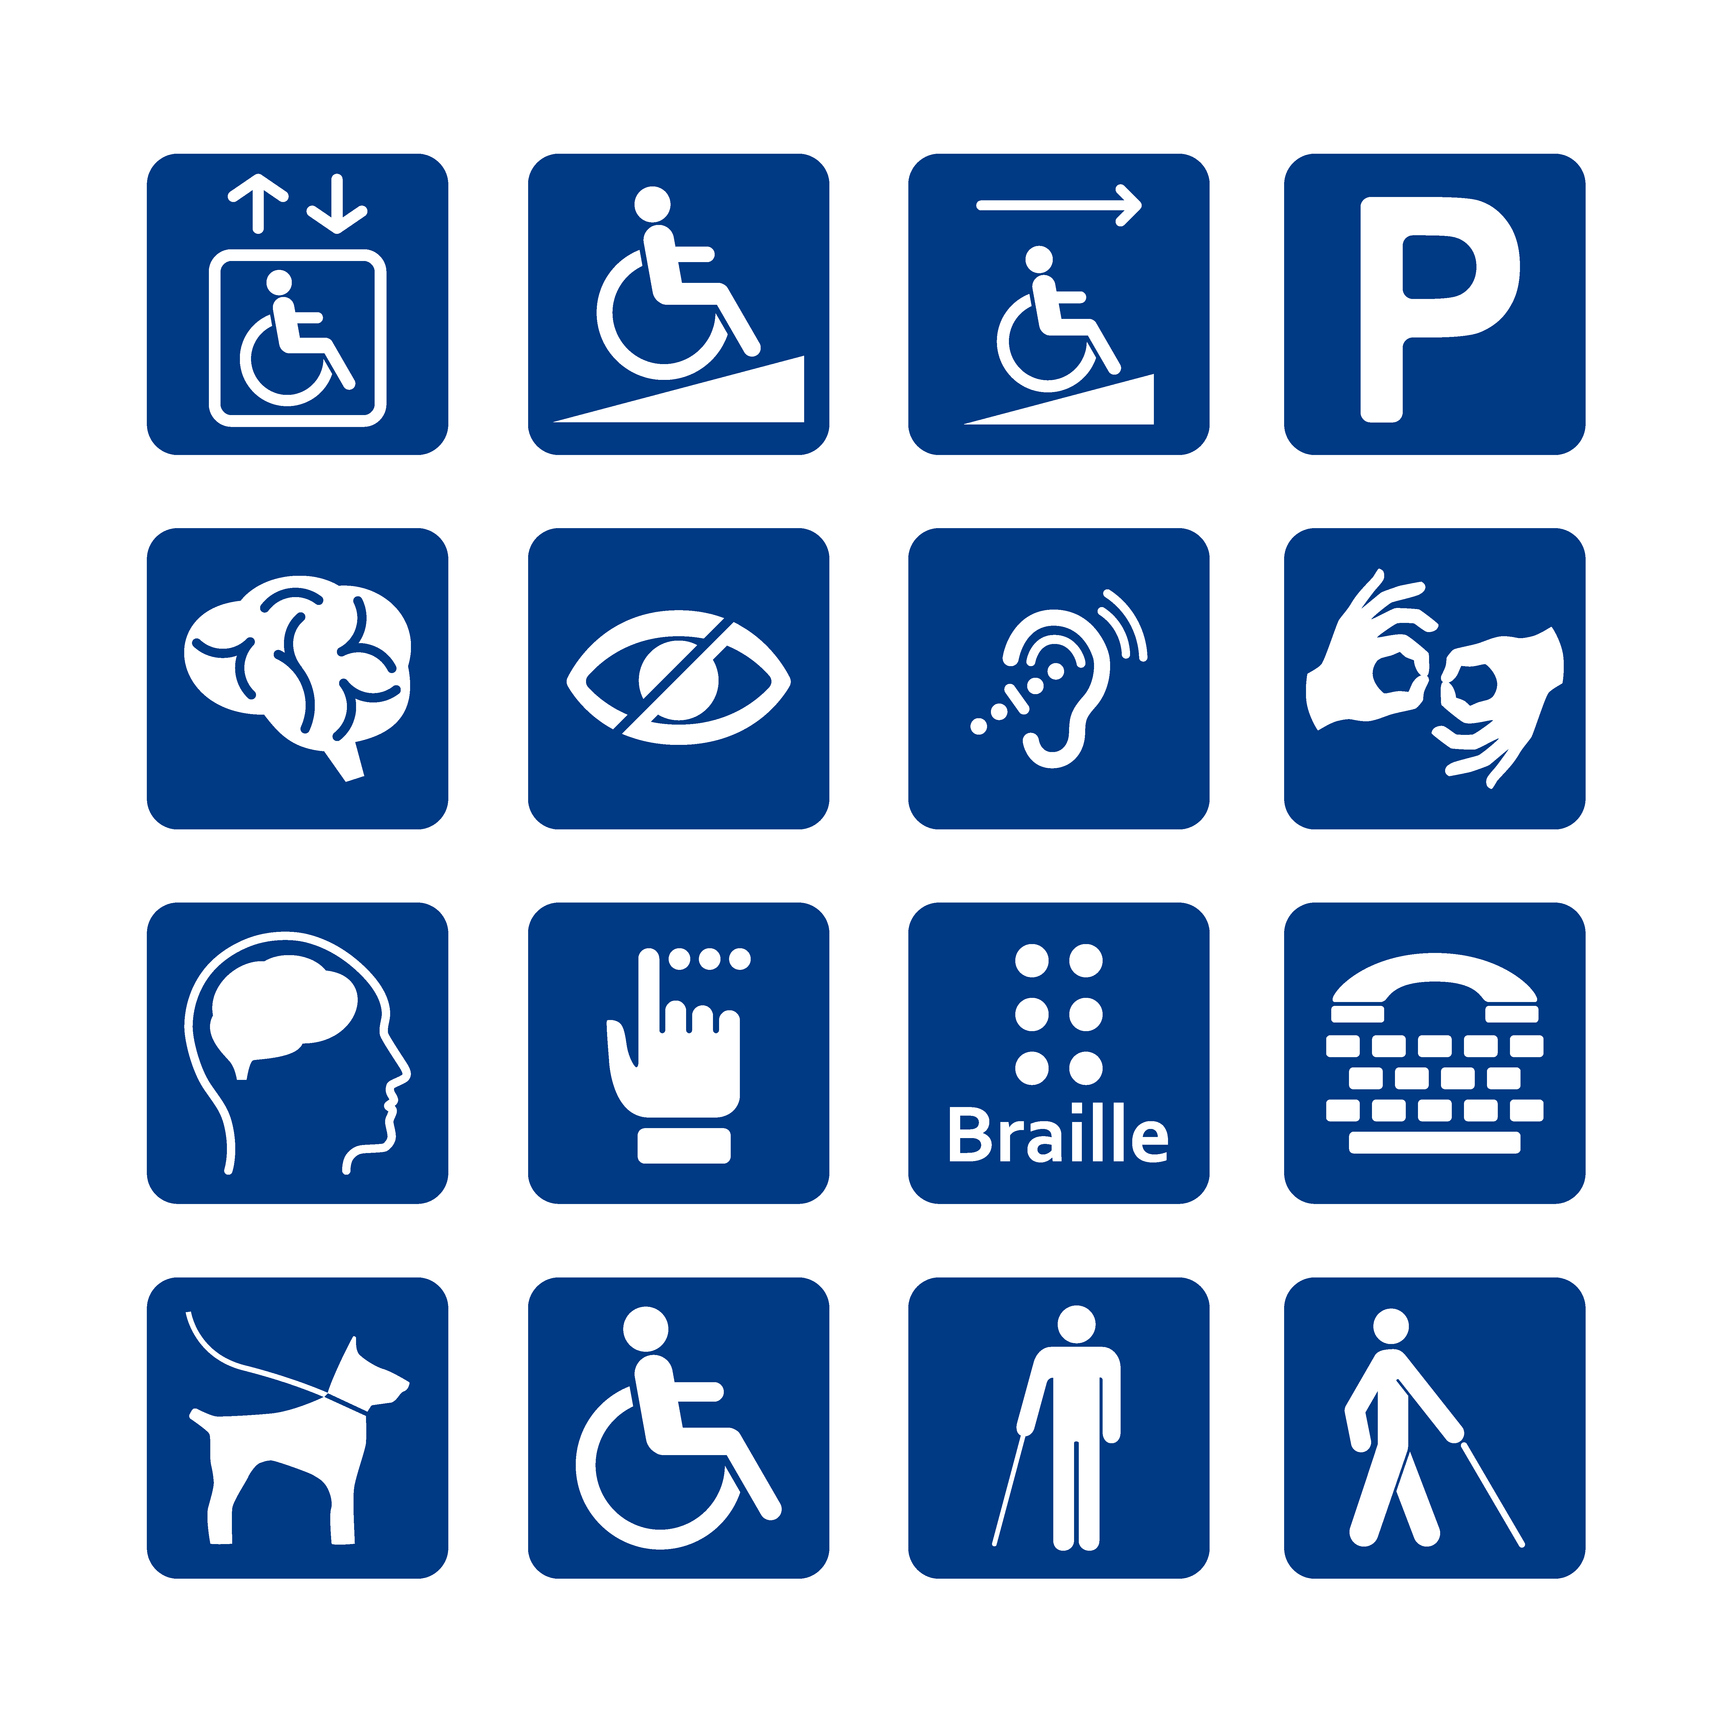 Icons representing several different types of disabilities.